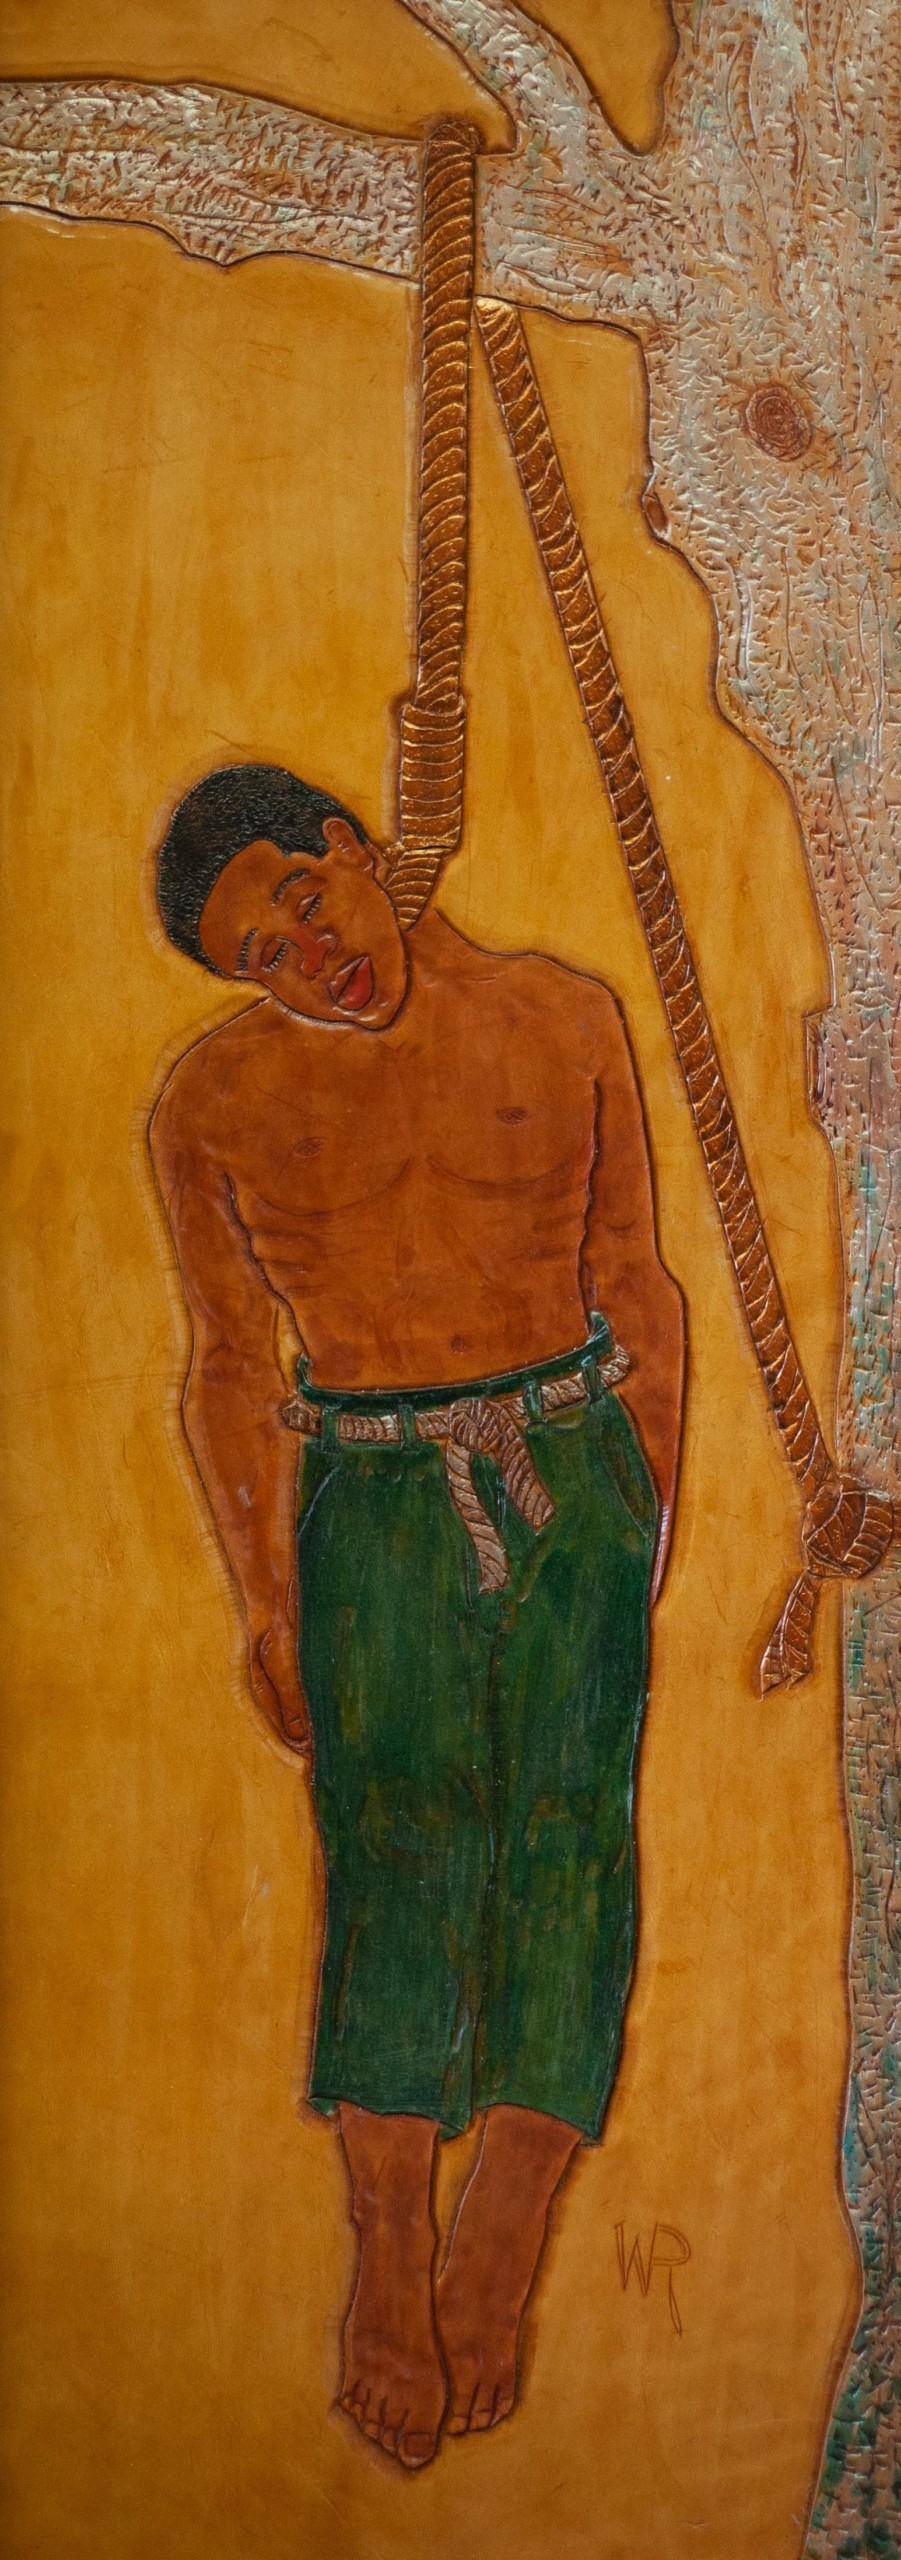 winfred rembert painting on leather